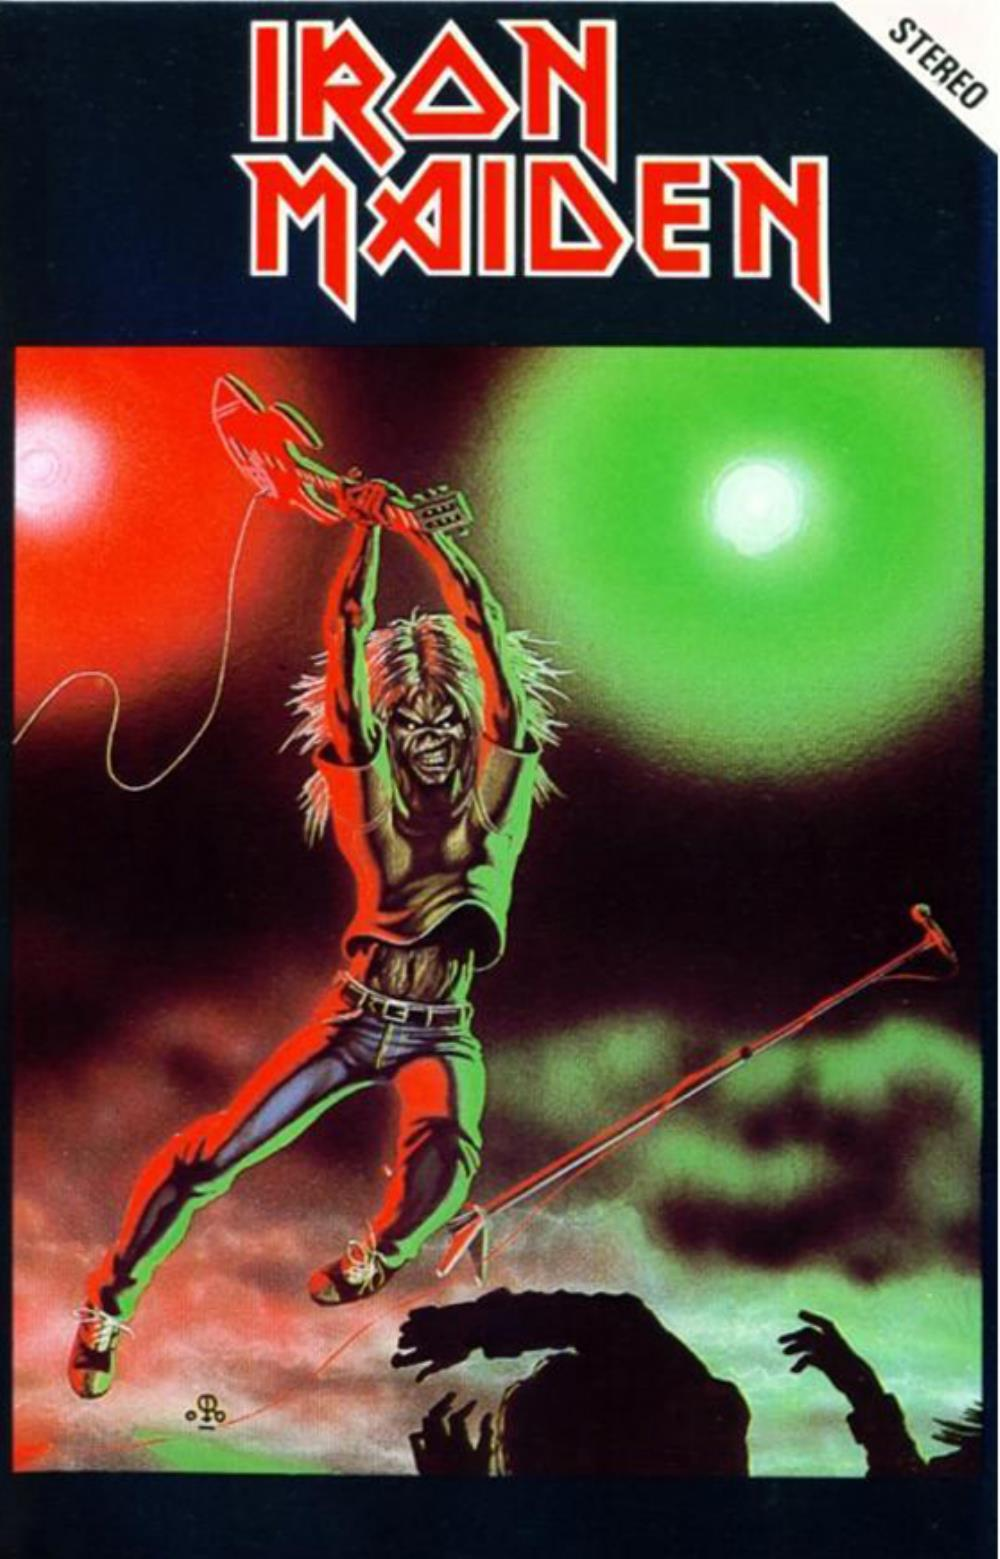 Iron Maiden - Live At The Rainbow DVD (album) cover